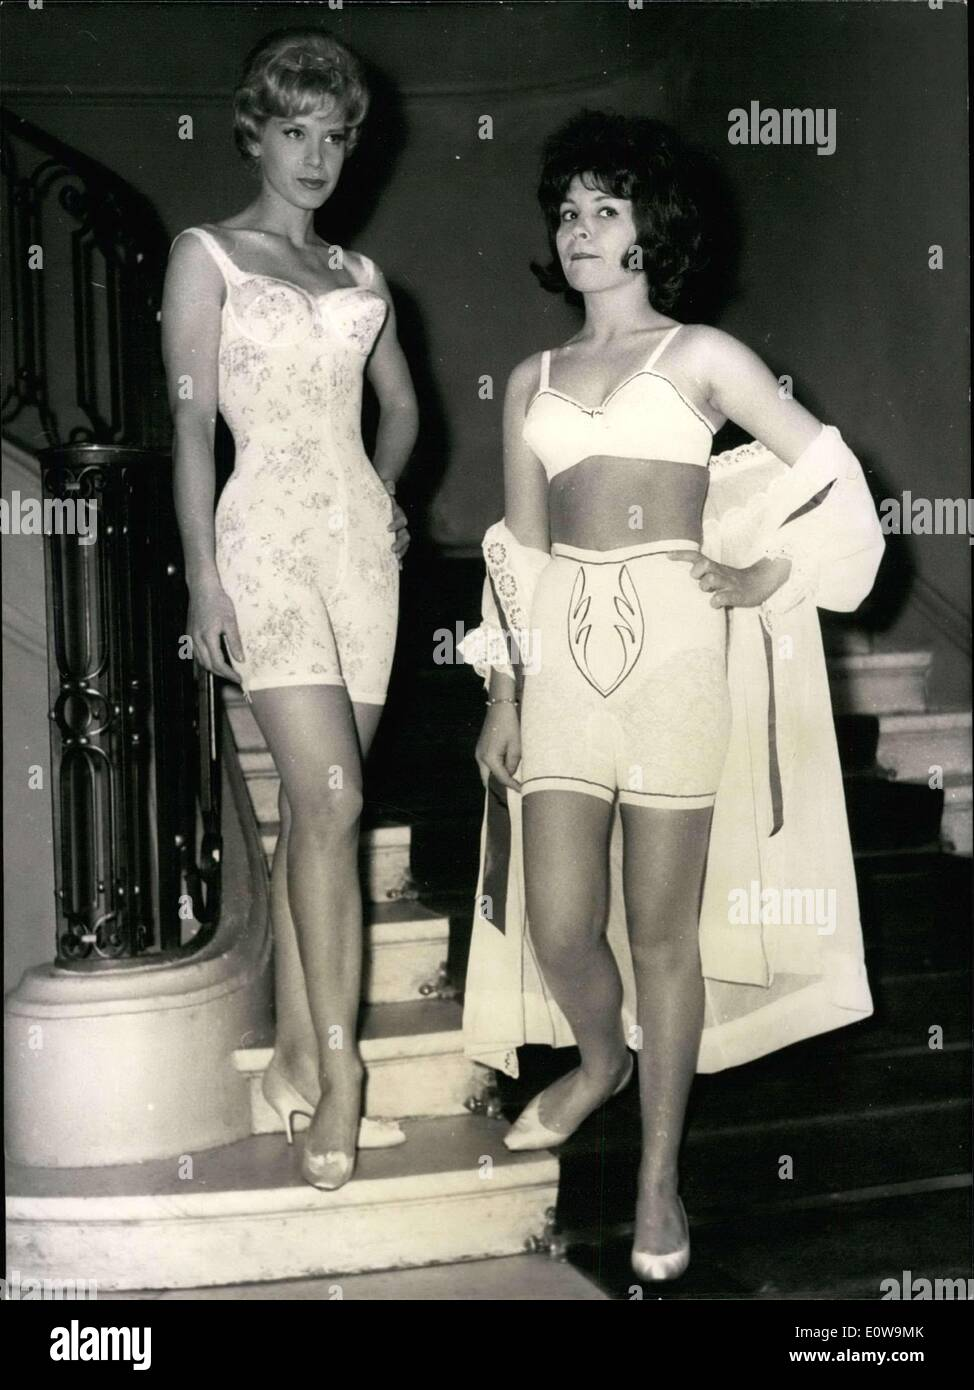 28, 1962 - Only corsets, girdles, and bras were featured in